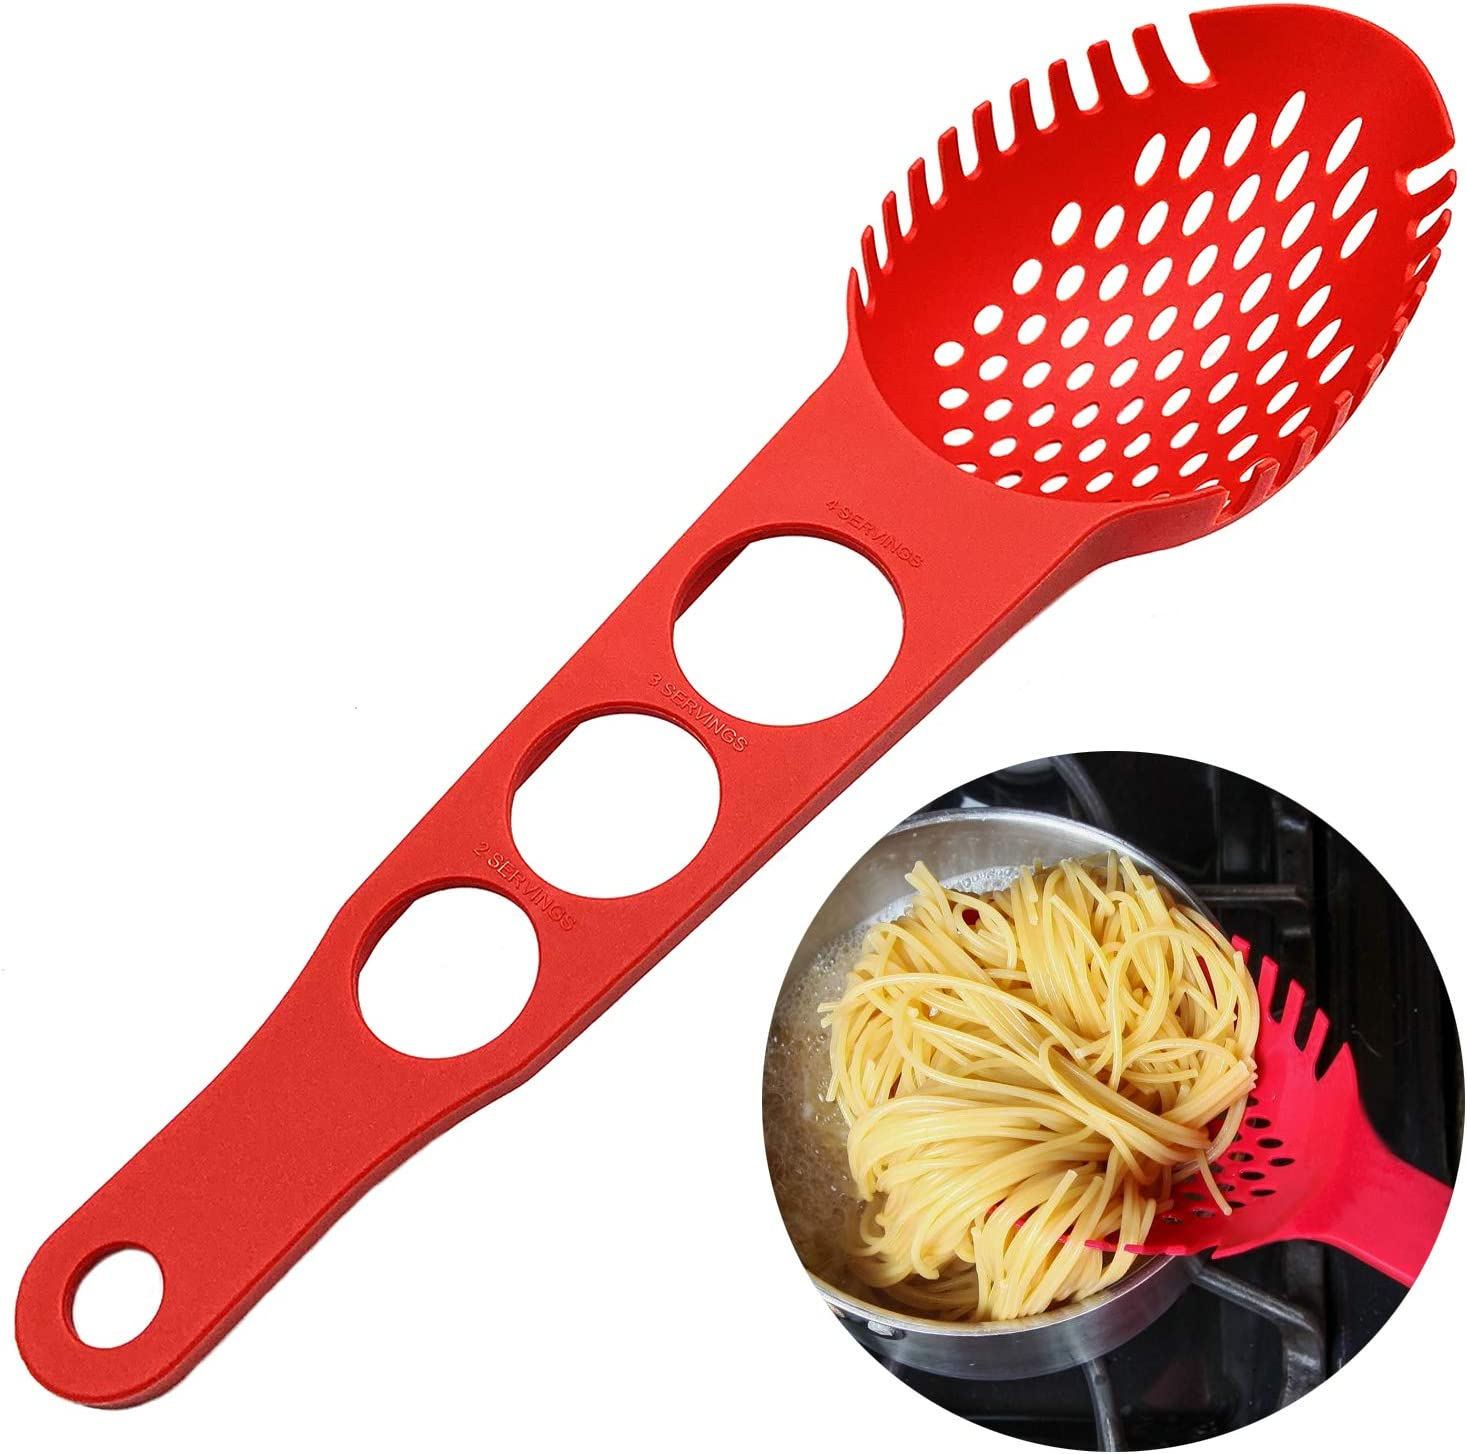 Nylon Spaghetti Server Non-Stick Pasta Fork Slotted Spoon Food Strainer with Spaghetti Measure Tool Strainer Ladle for Kitchen Dishwasher, Large Size